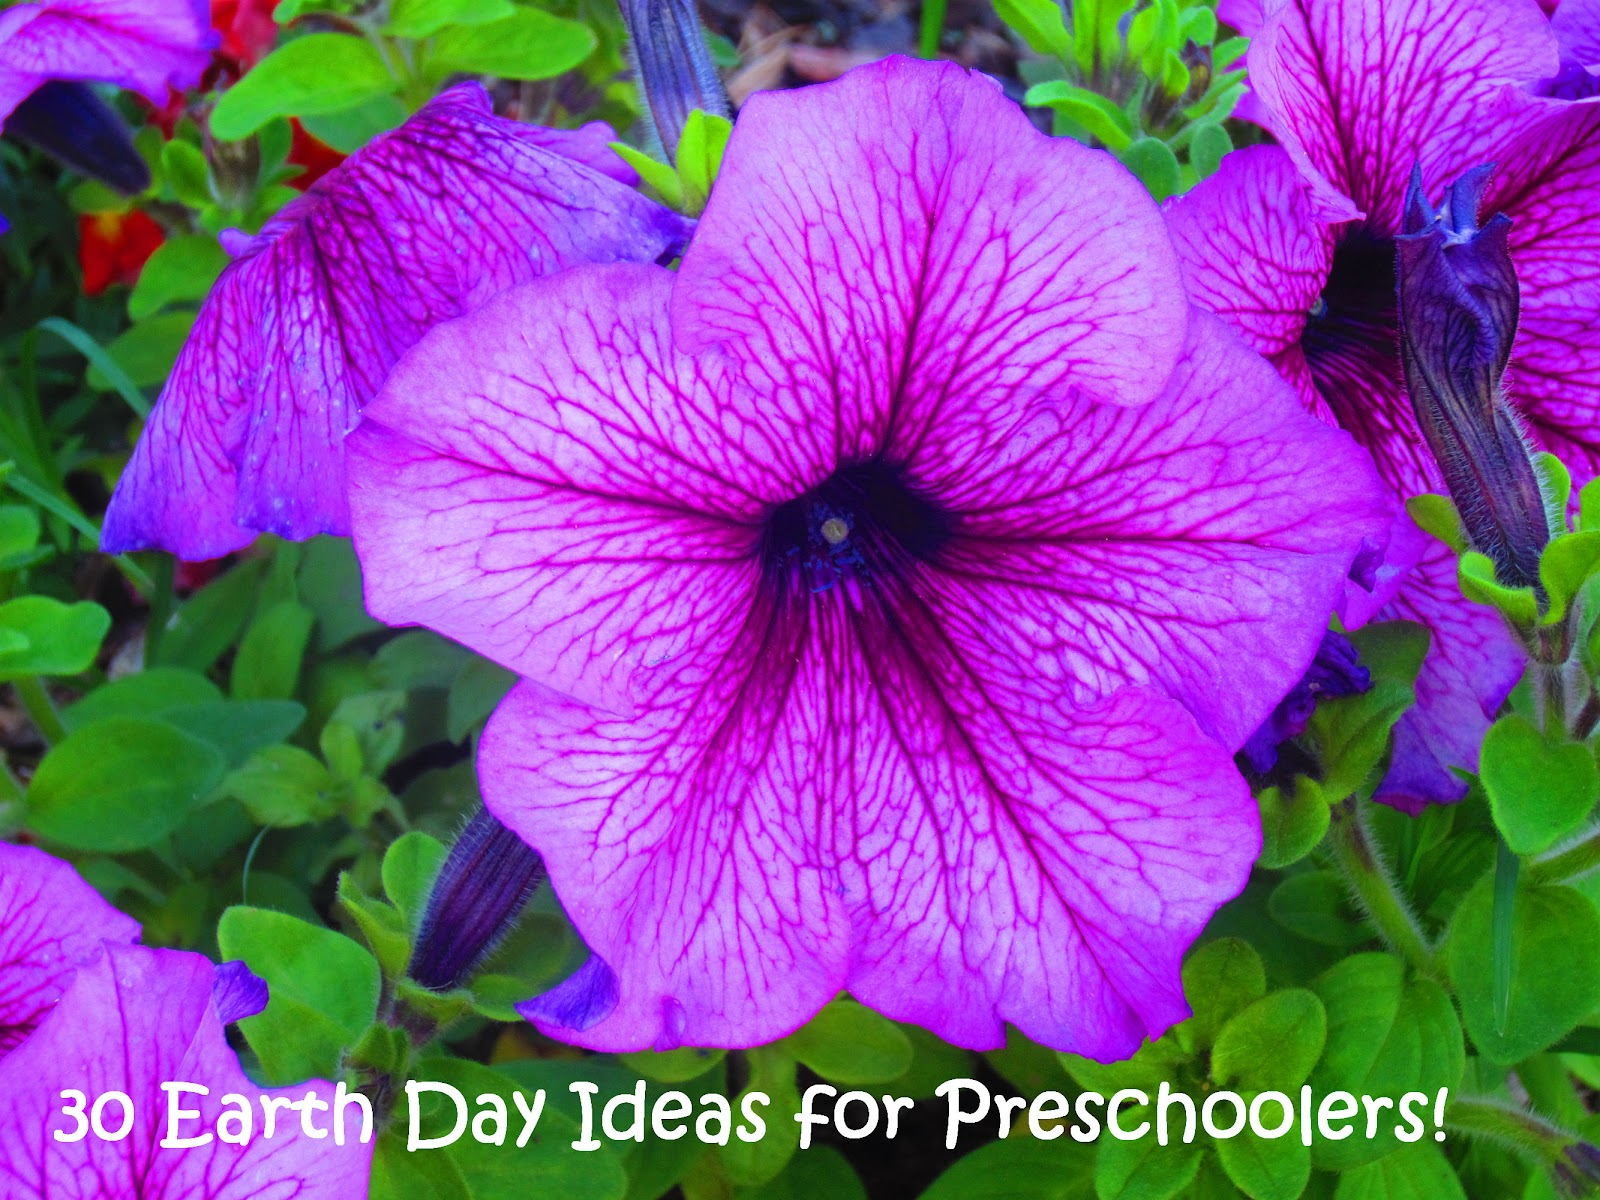 30 Earth Day Ideas For Preschoolers